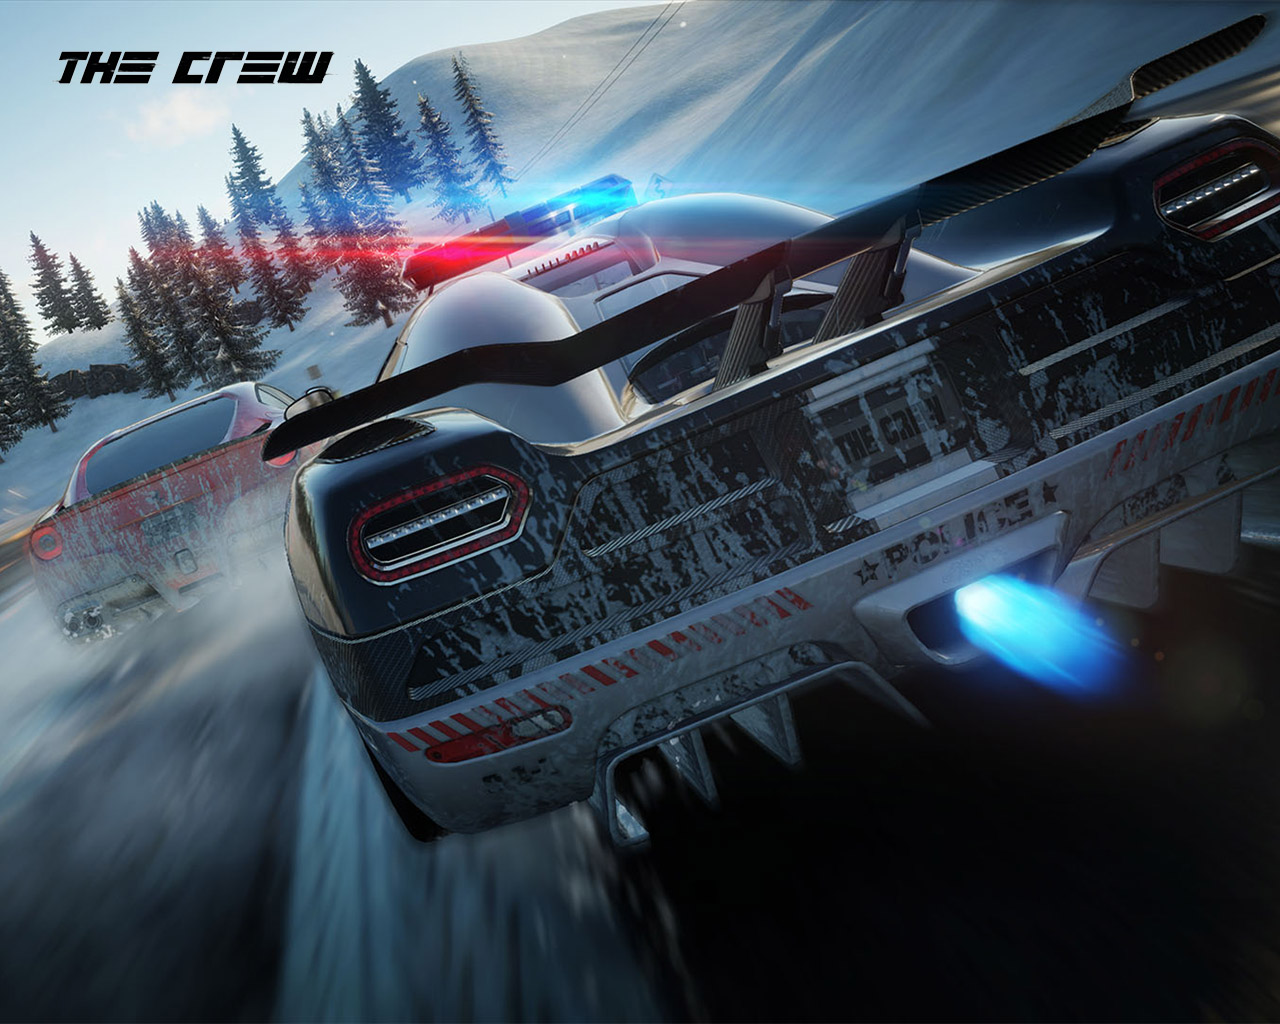 Free The Crew Wallpaper in 1280x1024